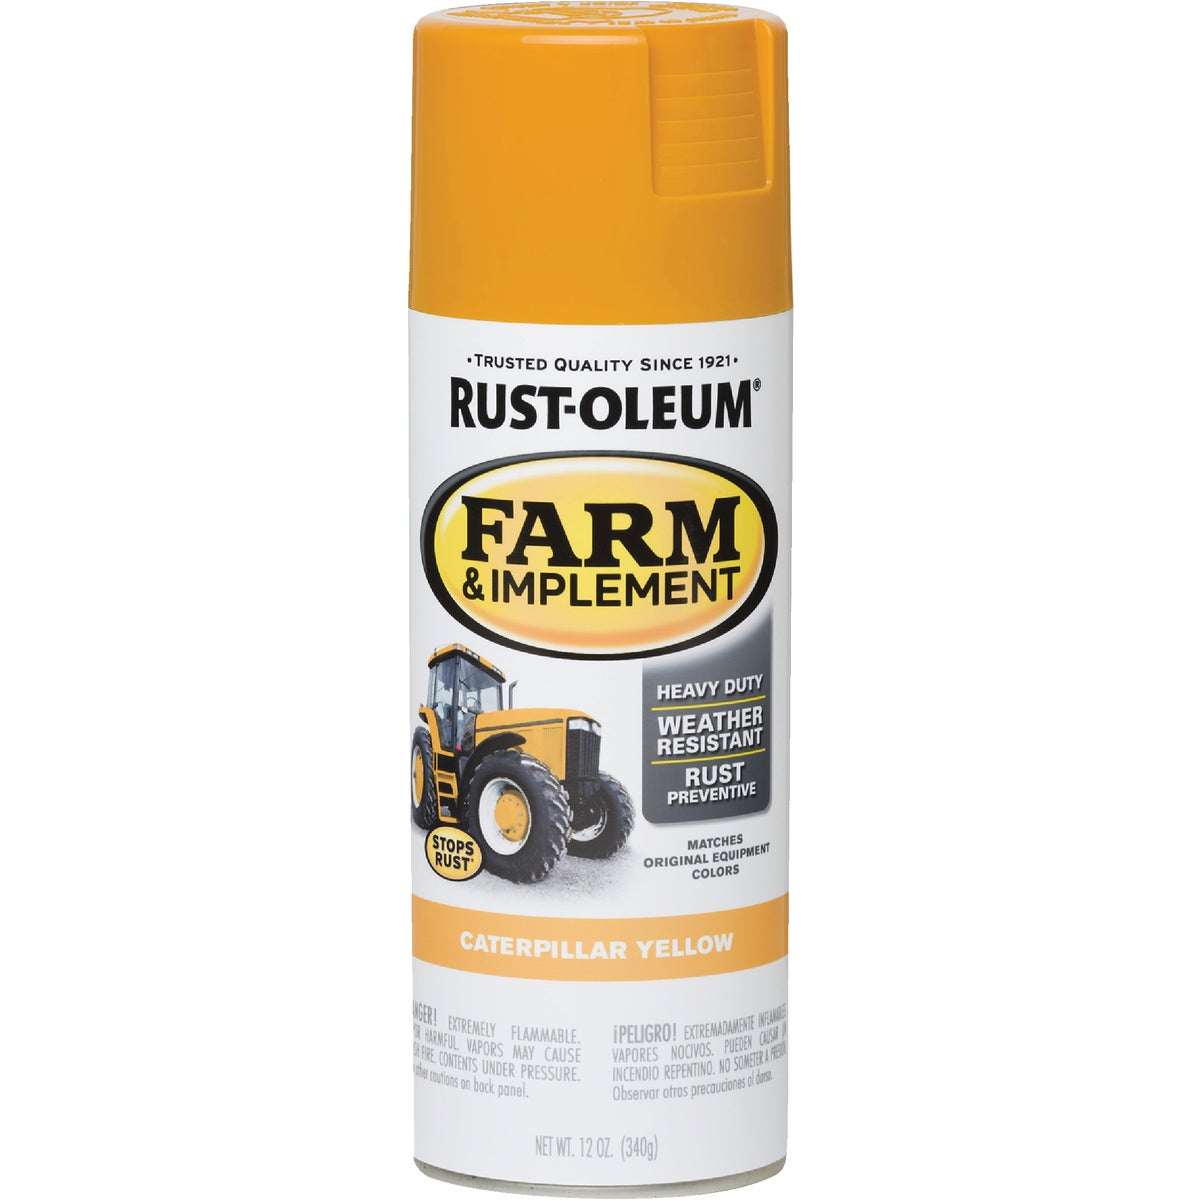 CAT YELLOW SPRAY PAINT - 7449-830 by Rustoleum